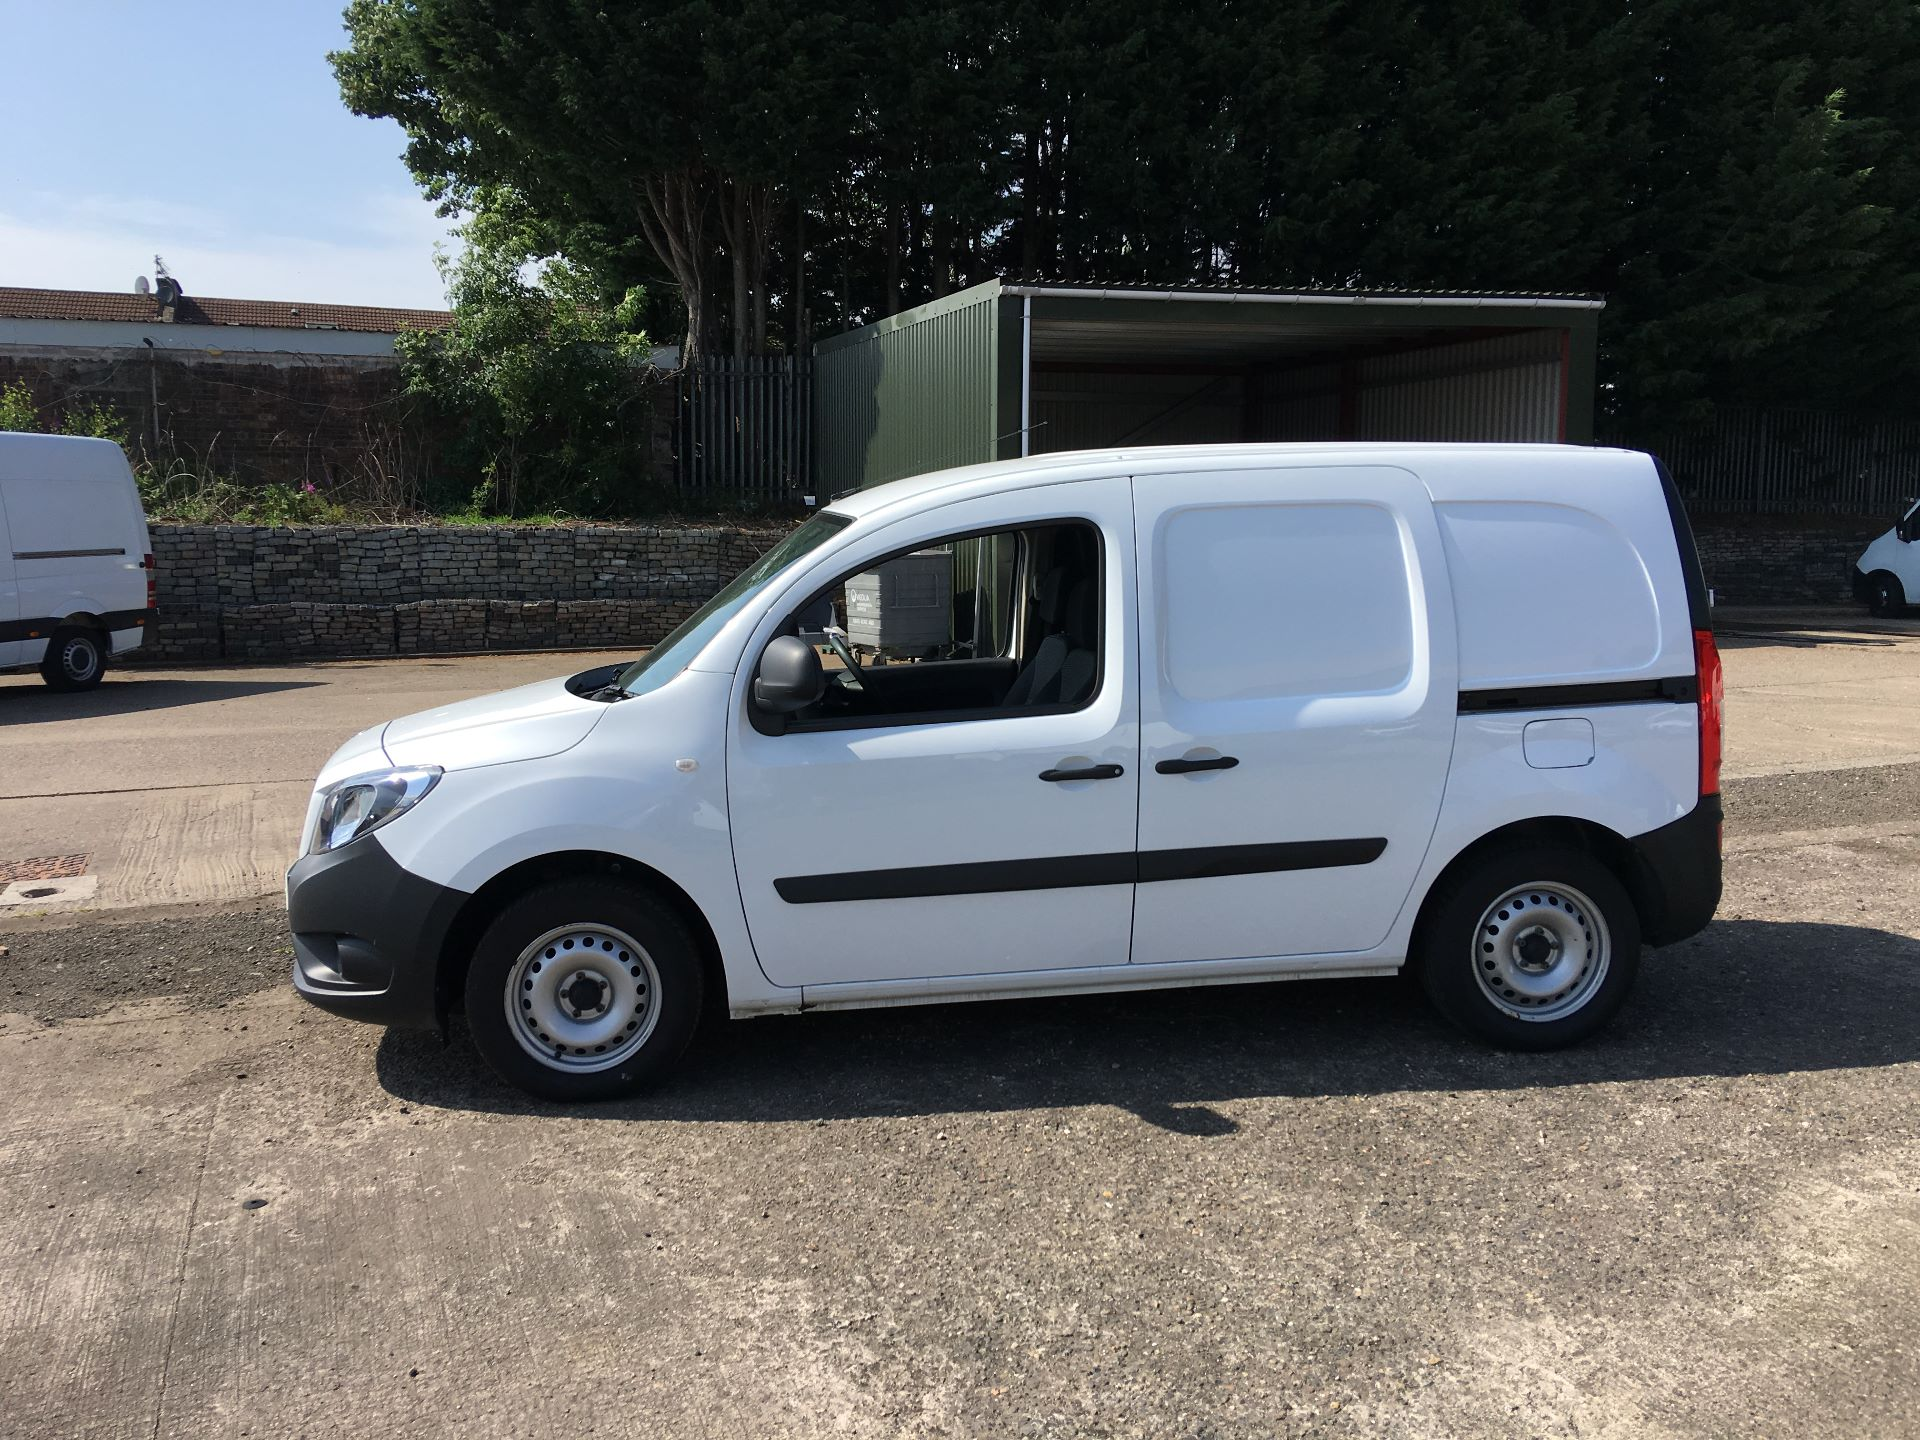 2018 Mercedes-Benz Citan LWB 109 CDI BLUE EFFICIENCY VAN EURO 5/6 (SF18VUO) Image 13